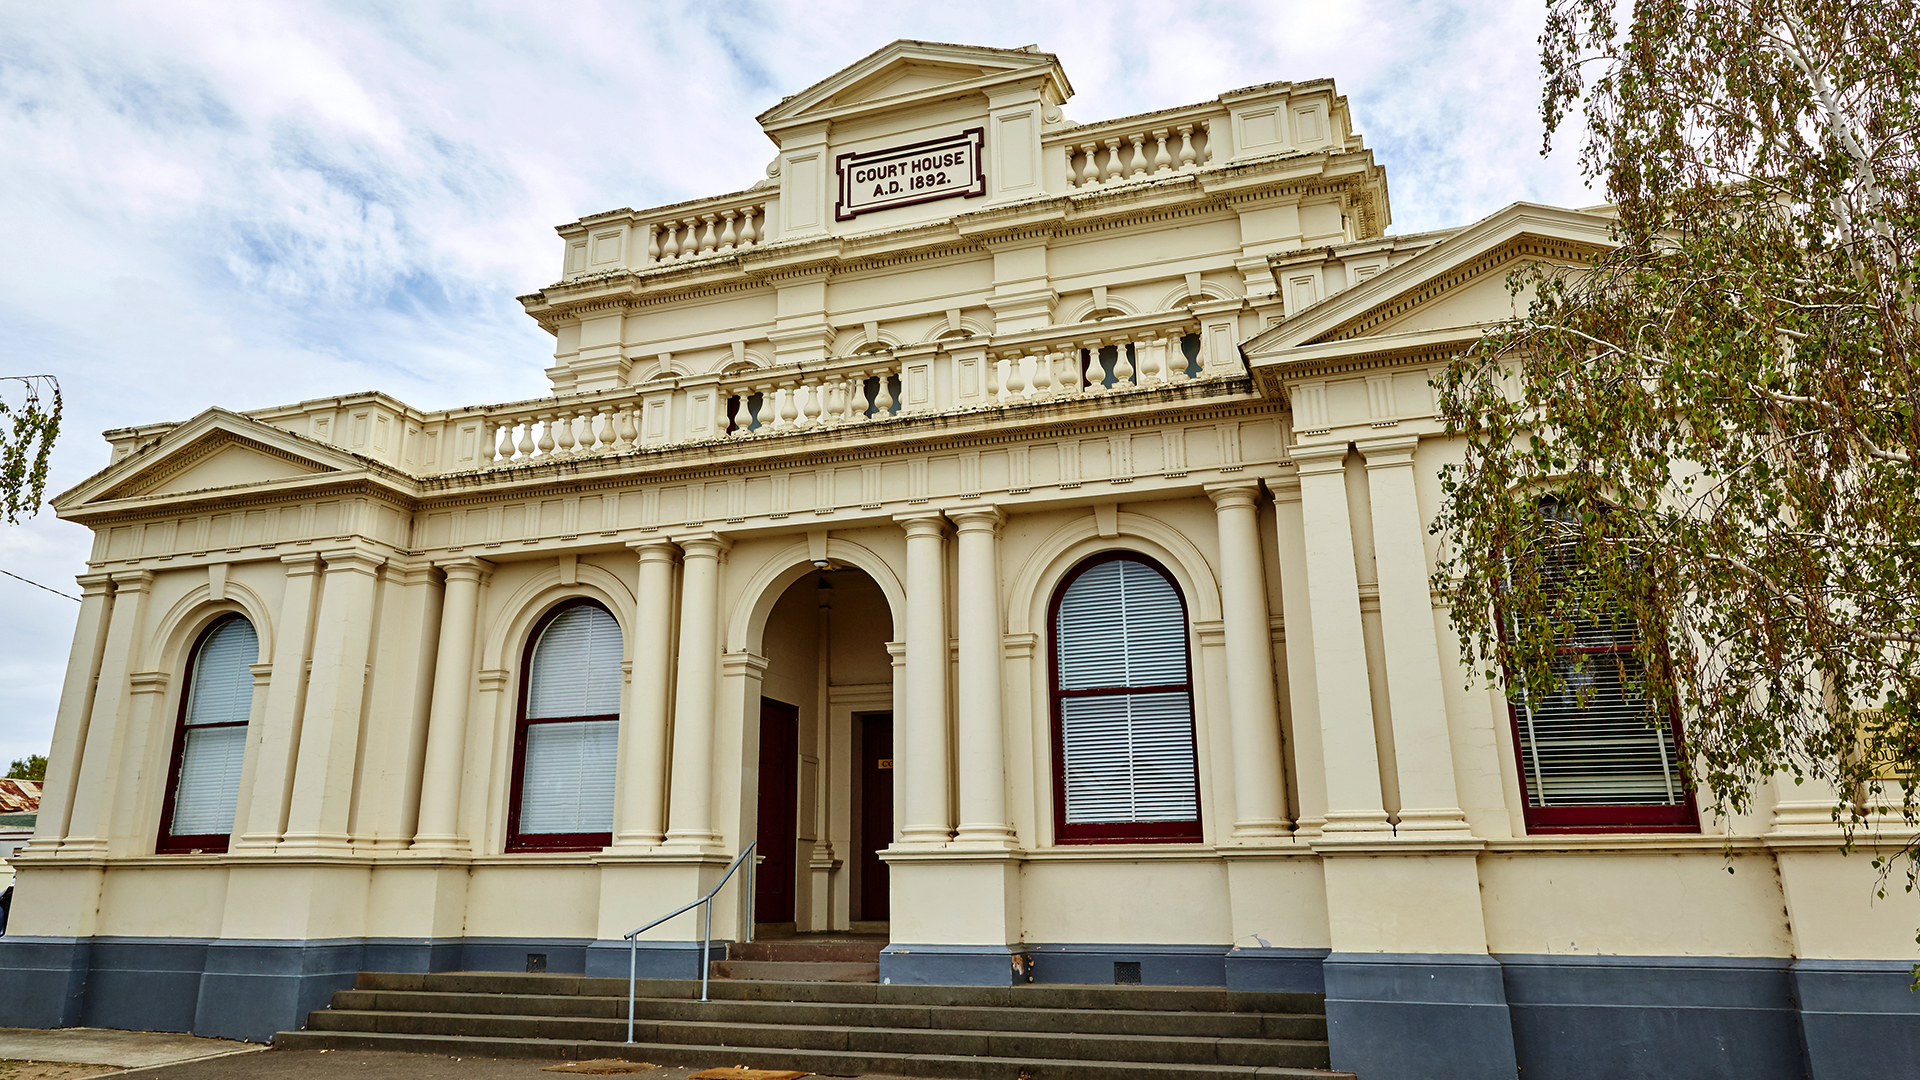 Maryborough Court House